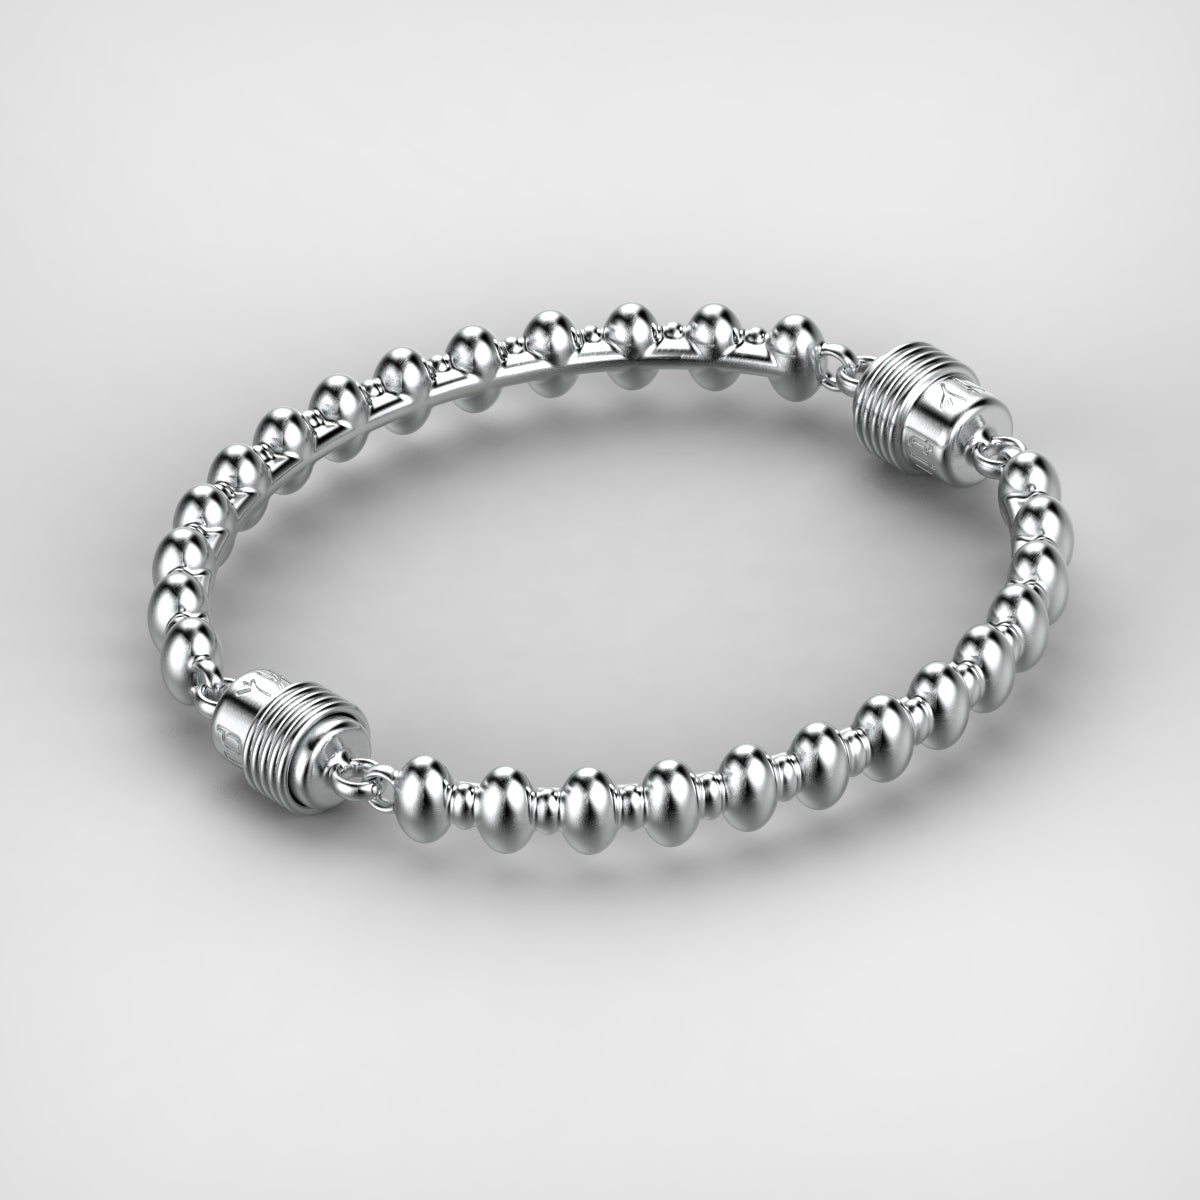 'Eternal'  Sterling silver women's bracelet - tinybird